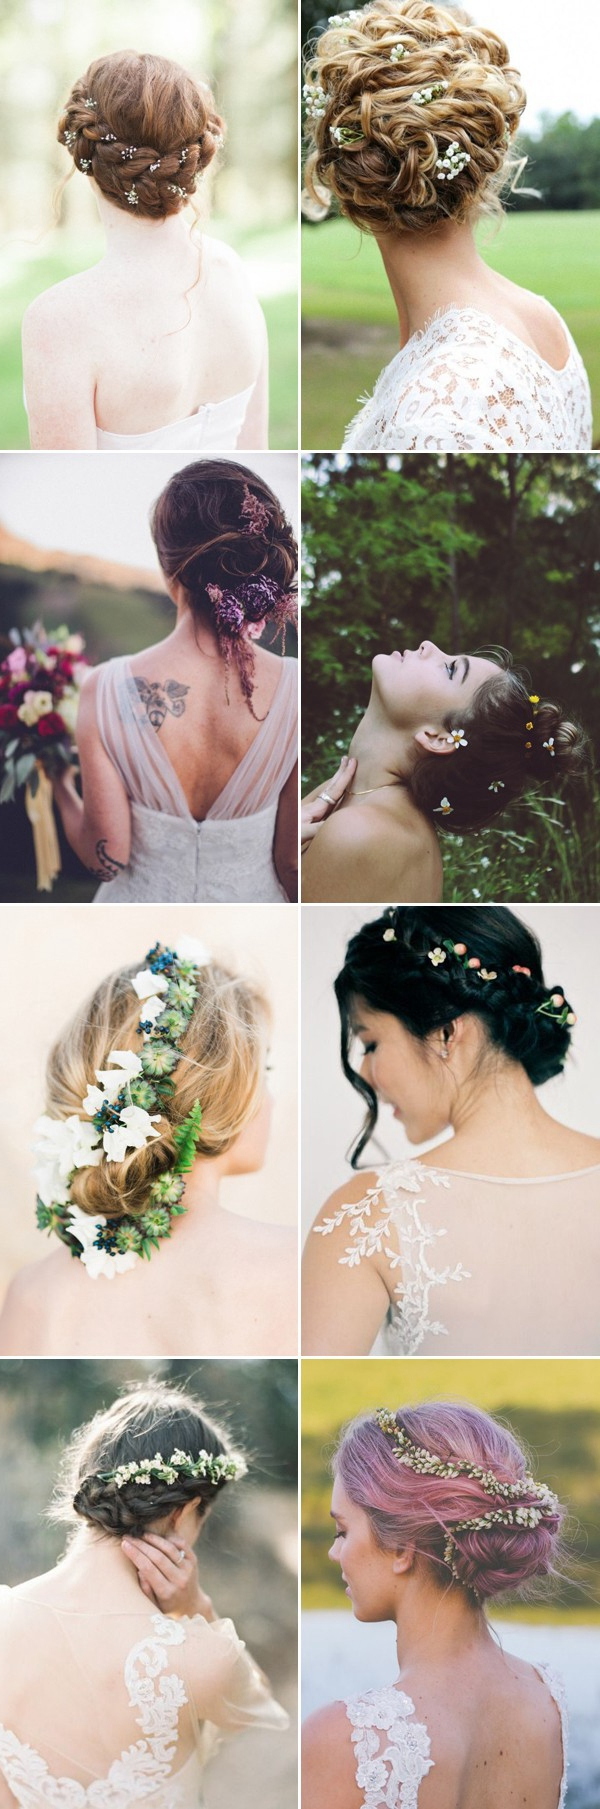 wedding-updos-with-flowers